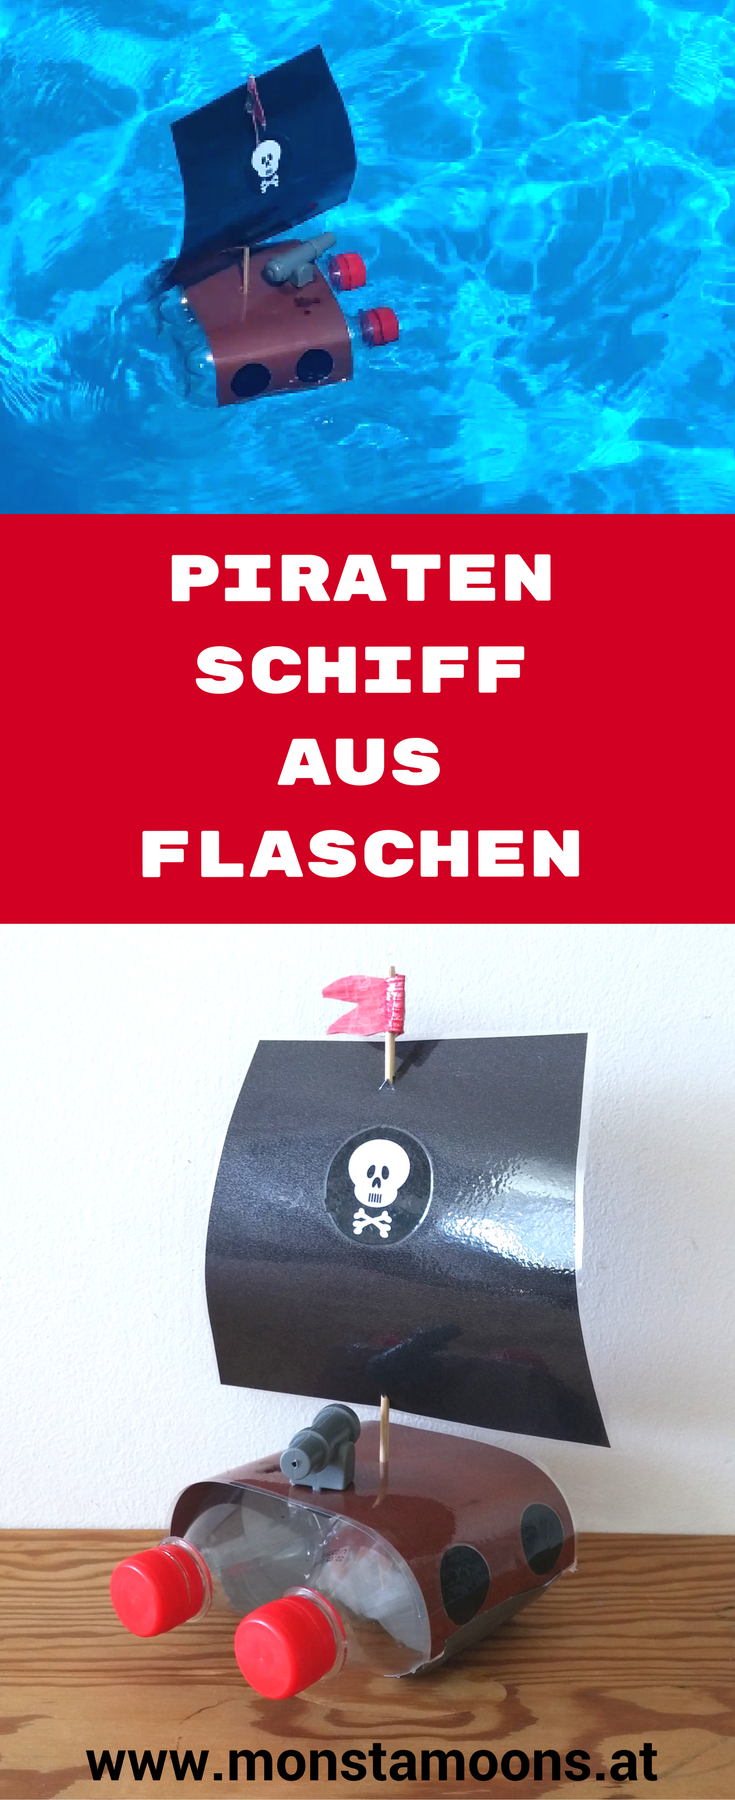 upcycling piratenschiff f r kinder basteln pet flaschen diy f r und mit kinder n. Black Bedroom Furniture Sets. Home Design Ideas